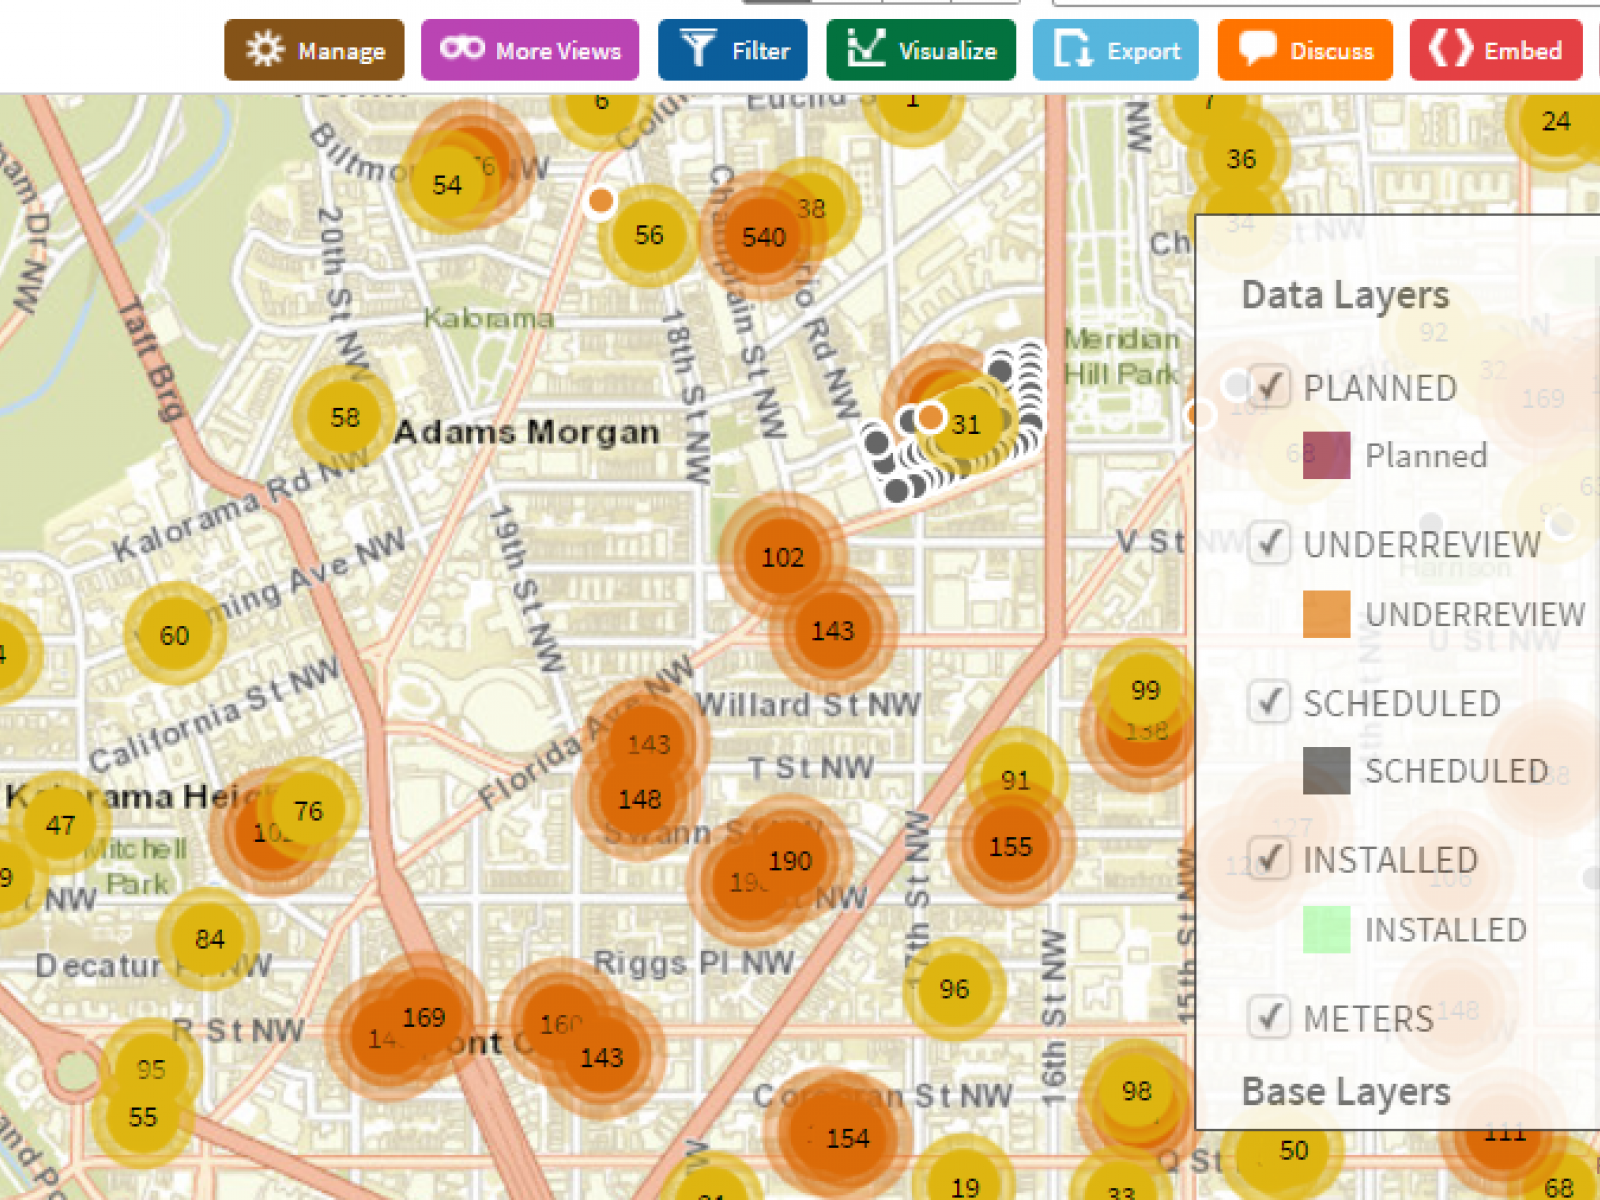 Screen shot from Open Data Portal